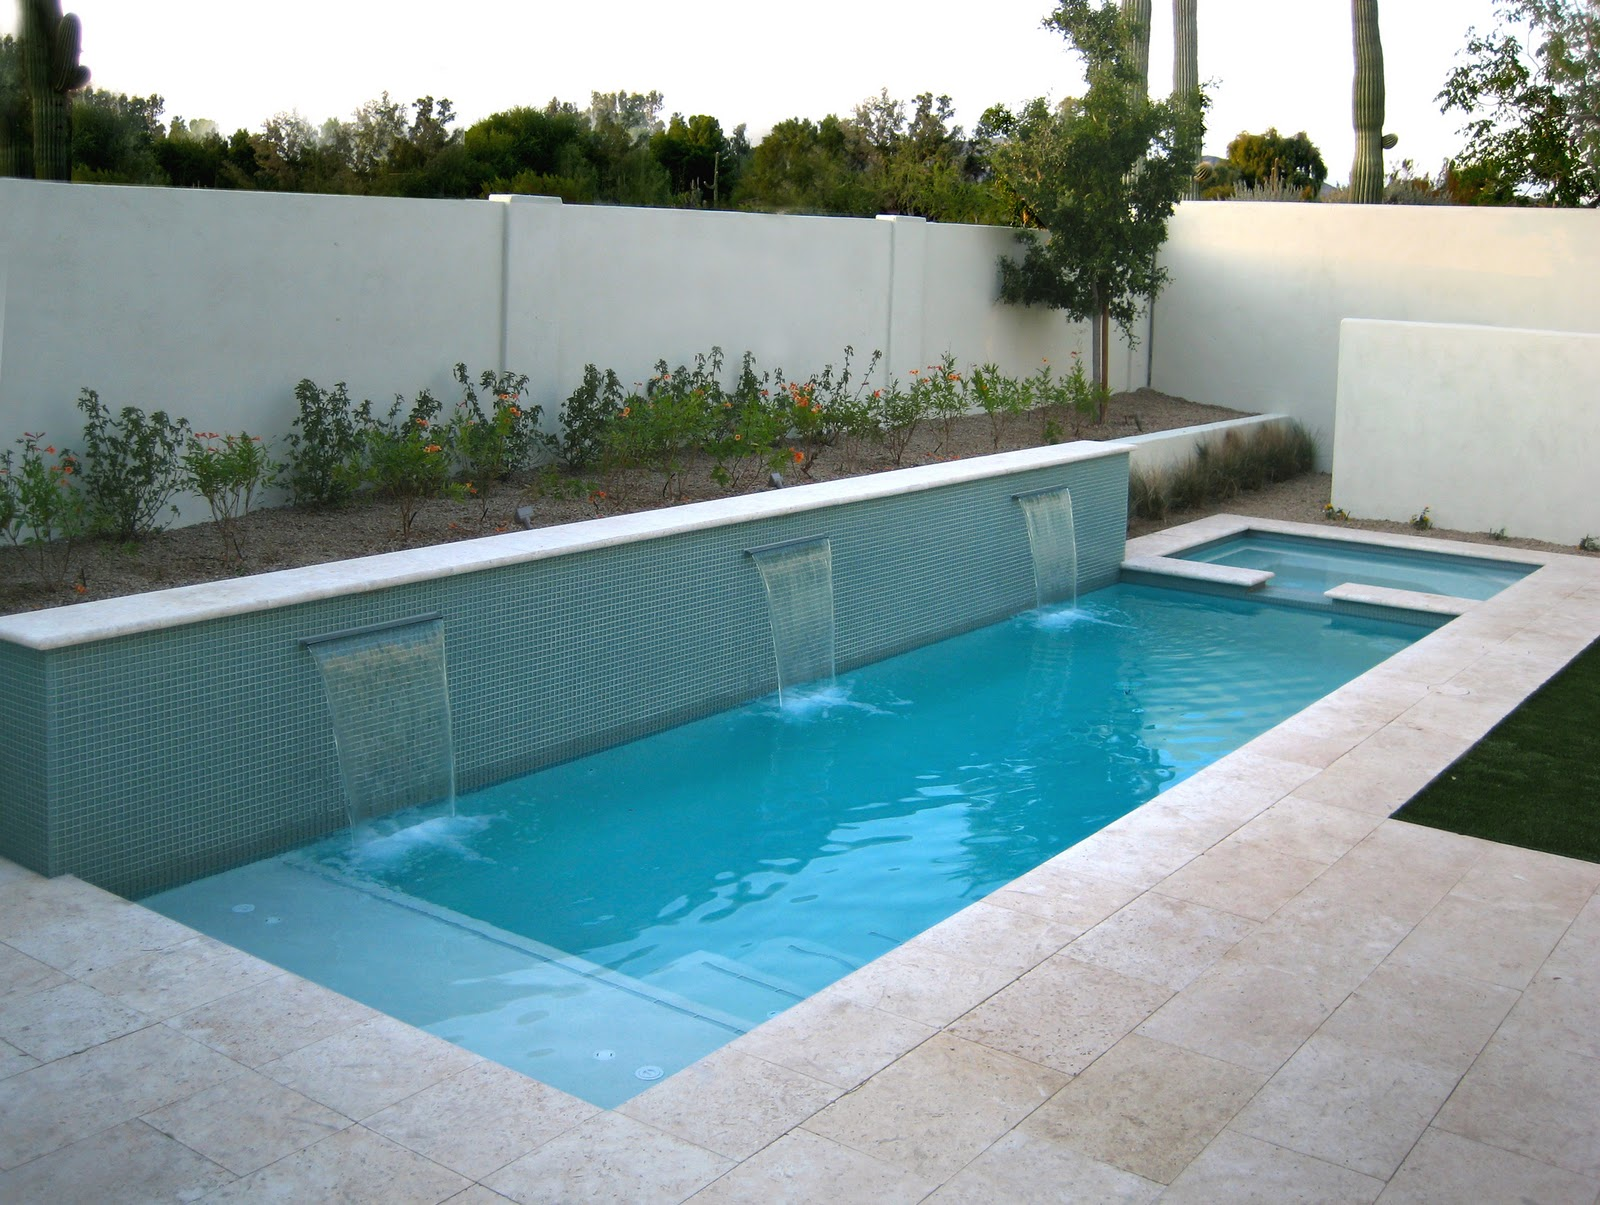 25 fabulous small backyard designs with swimming pool for Pool designs images